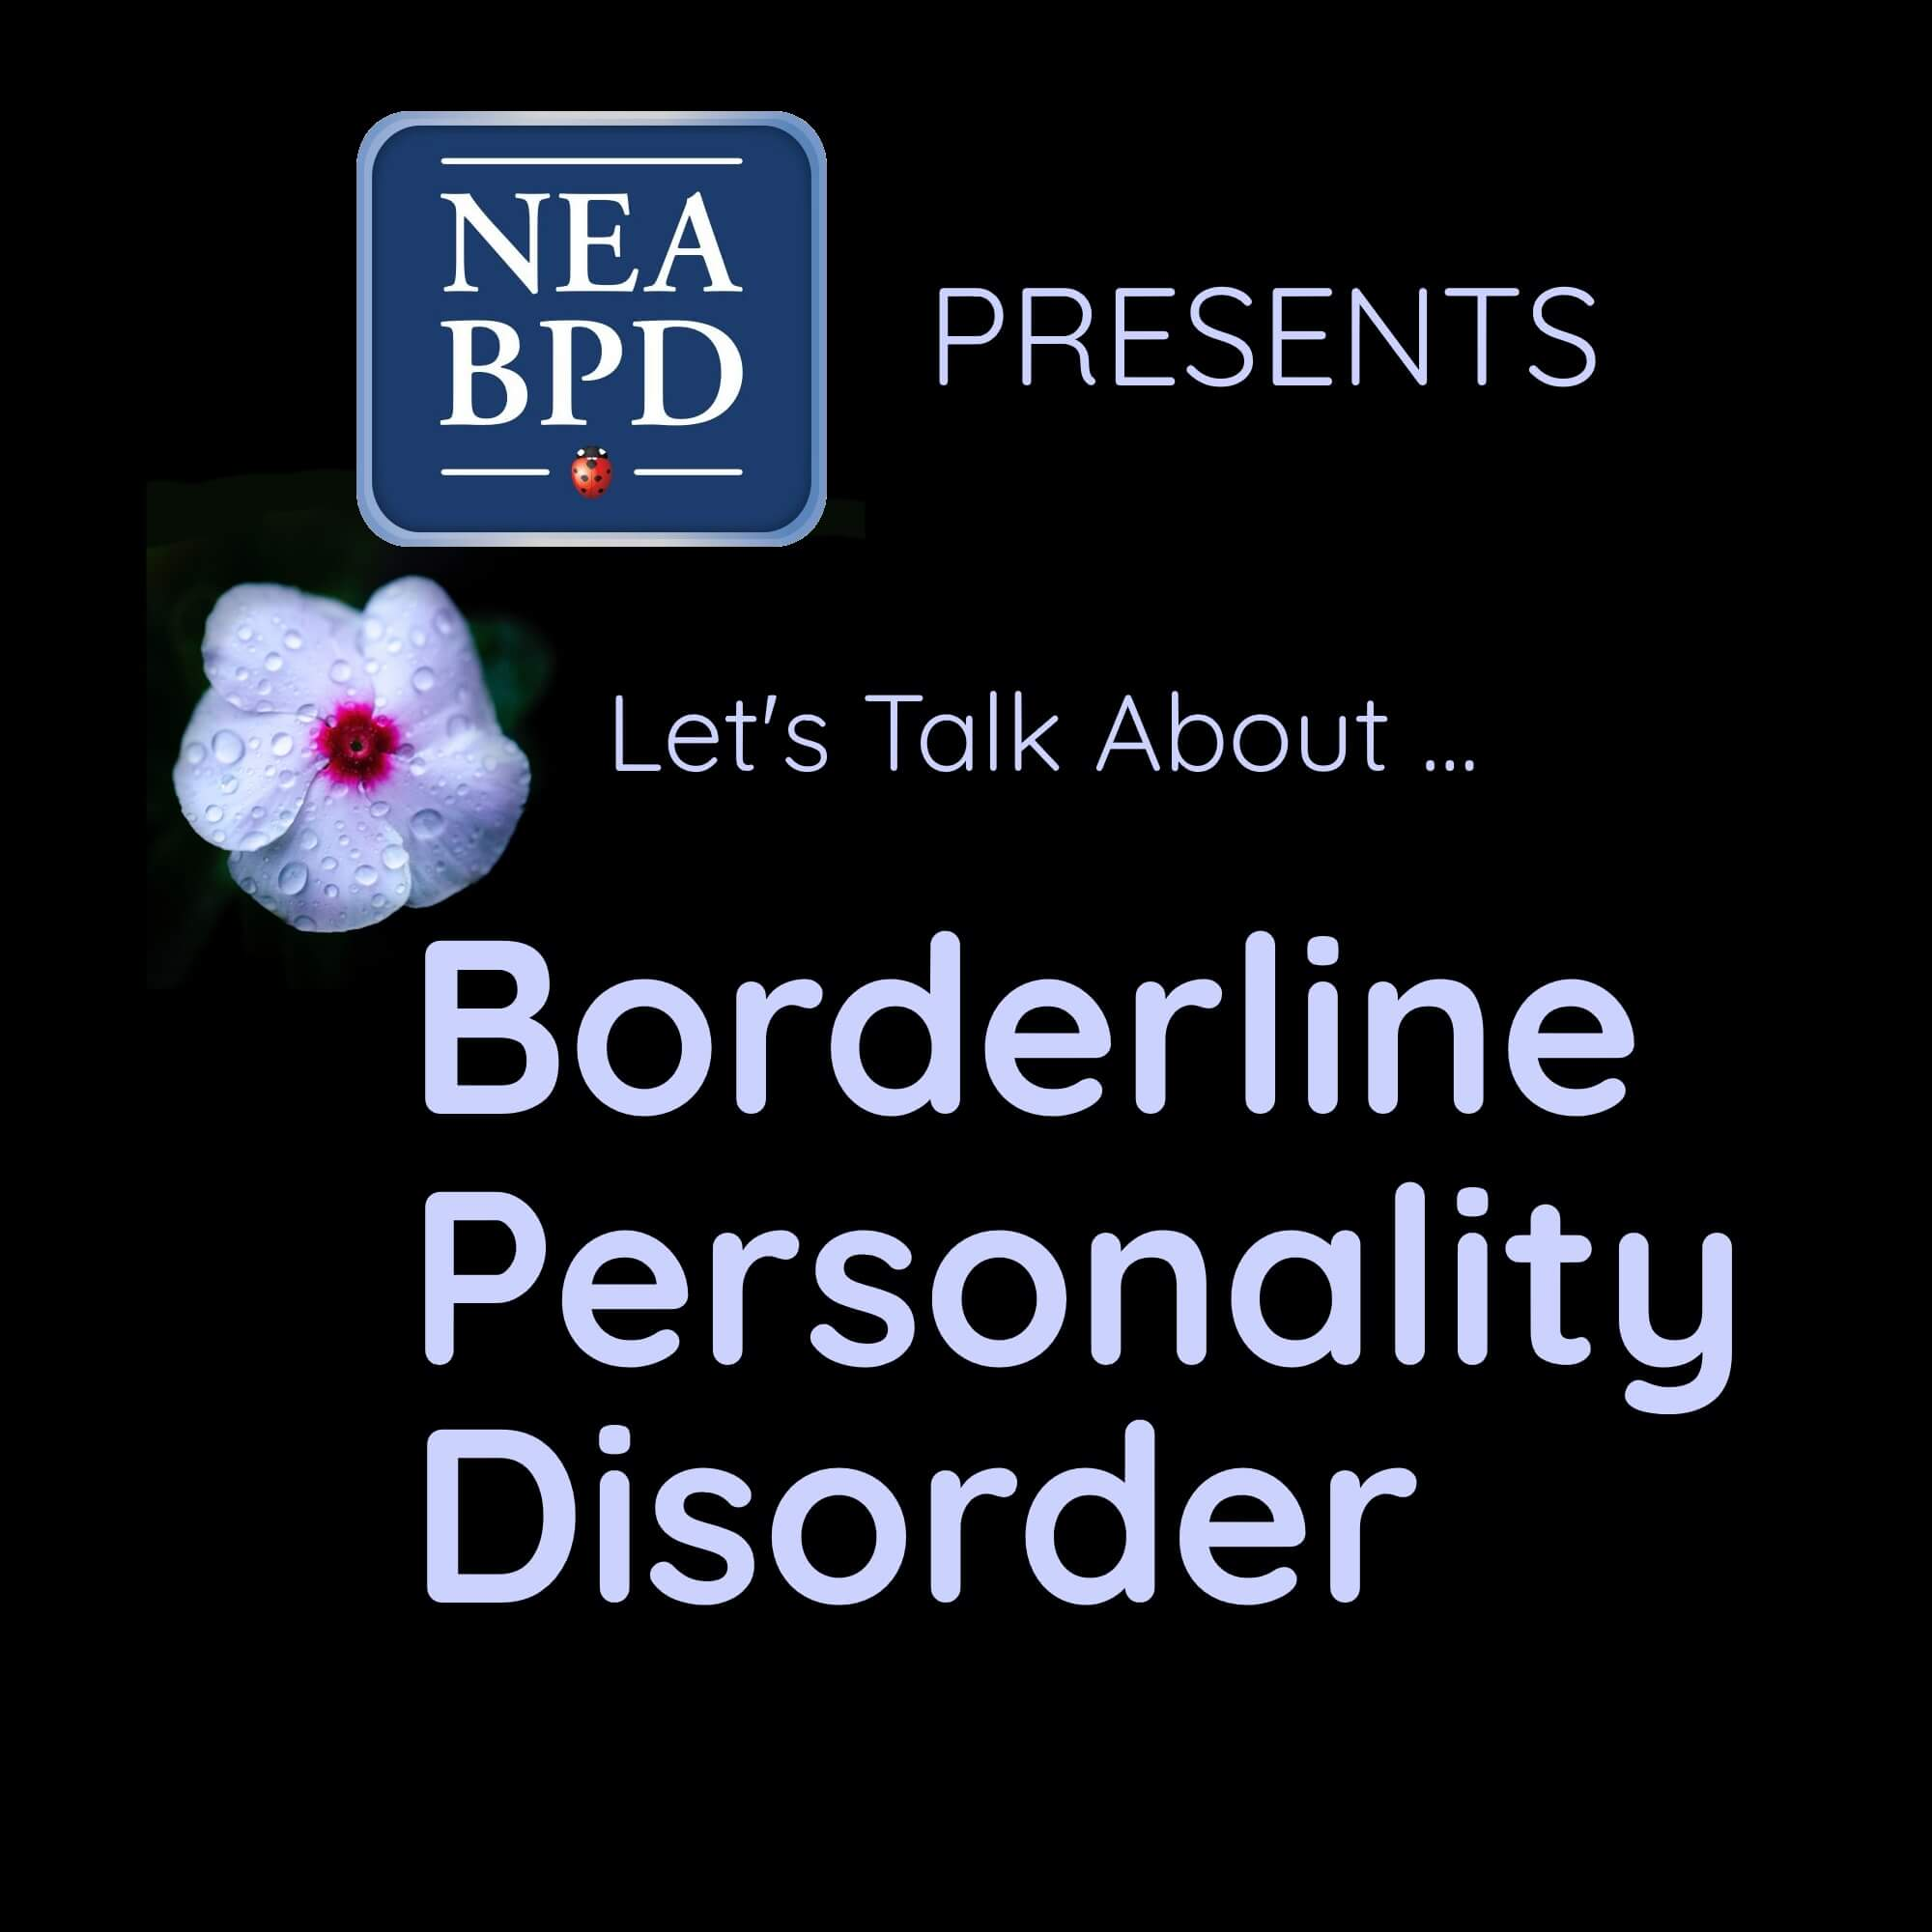 Let's Talk about Borderline Personality Disorder